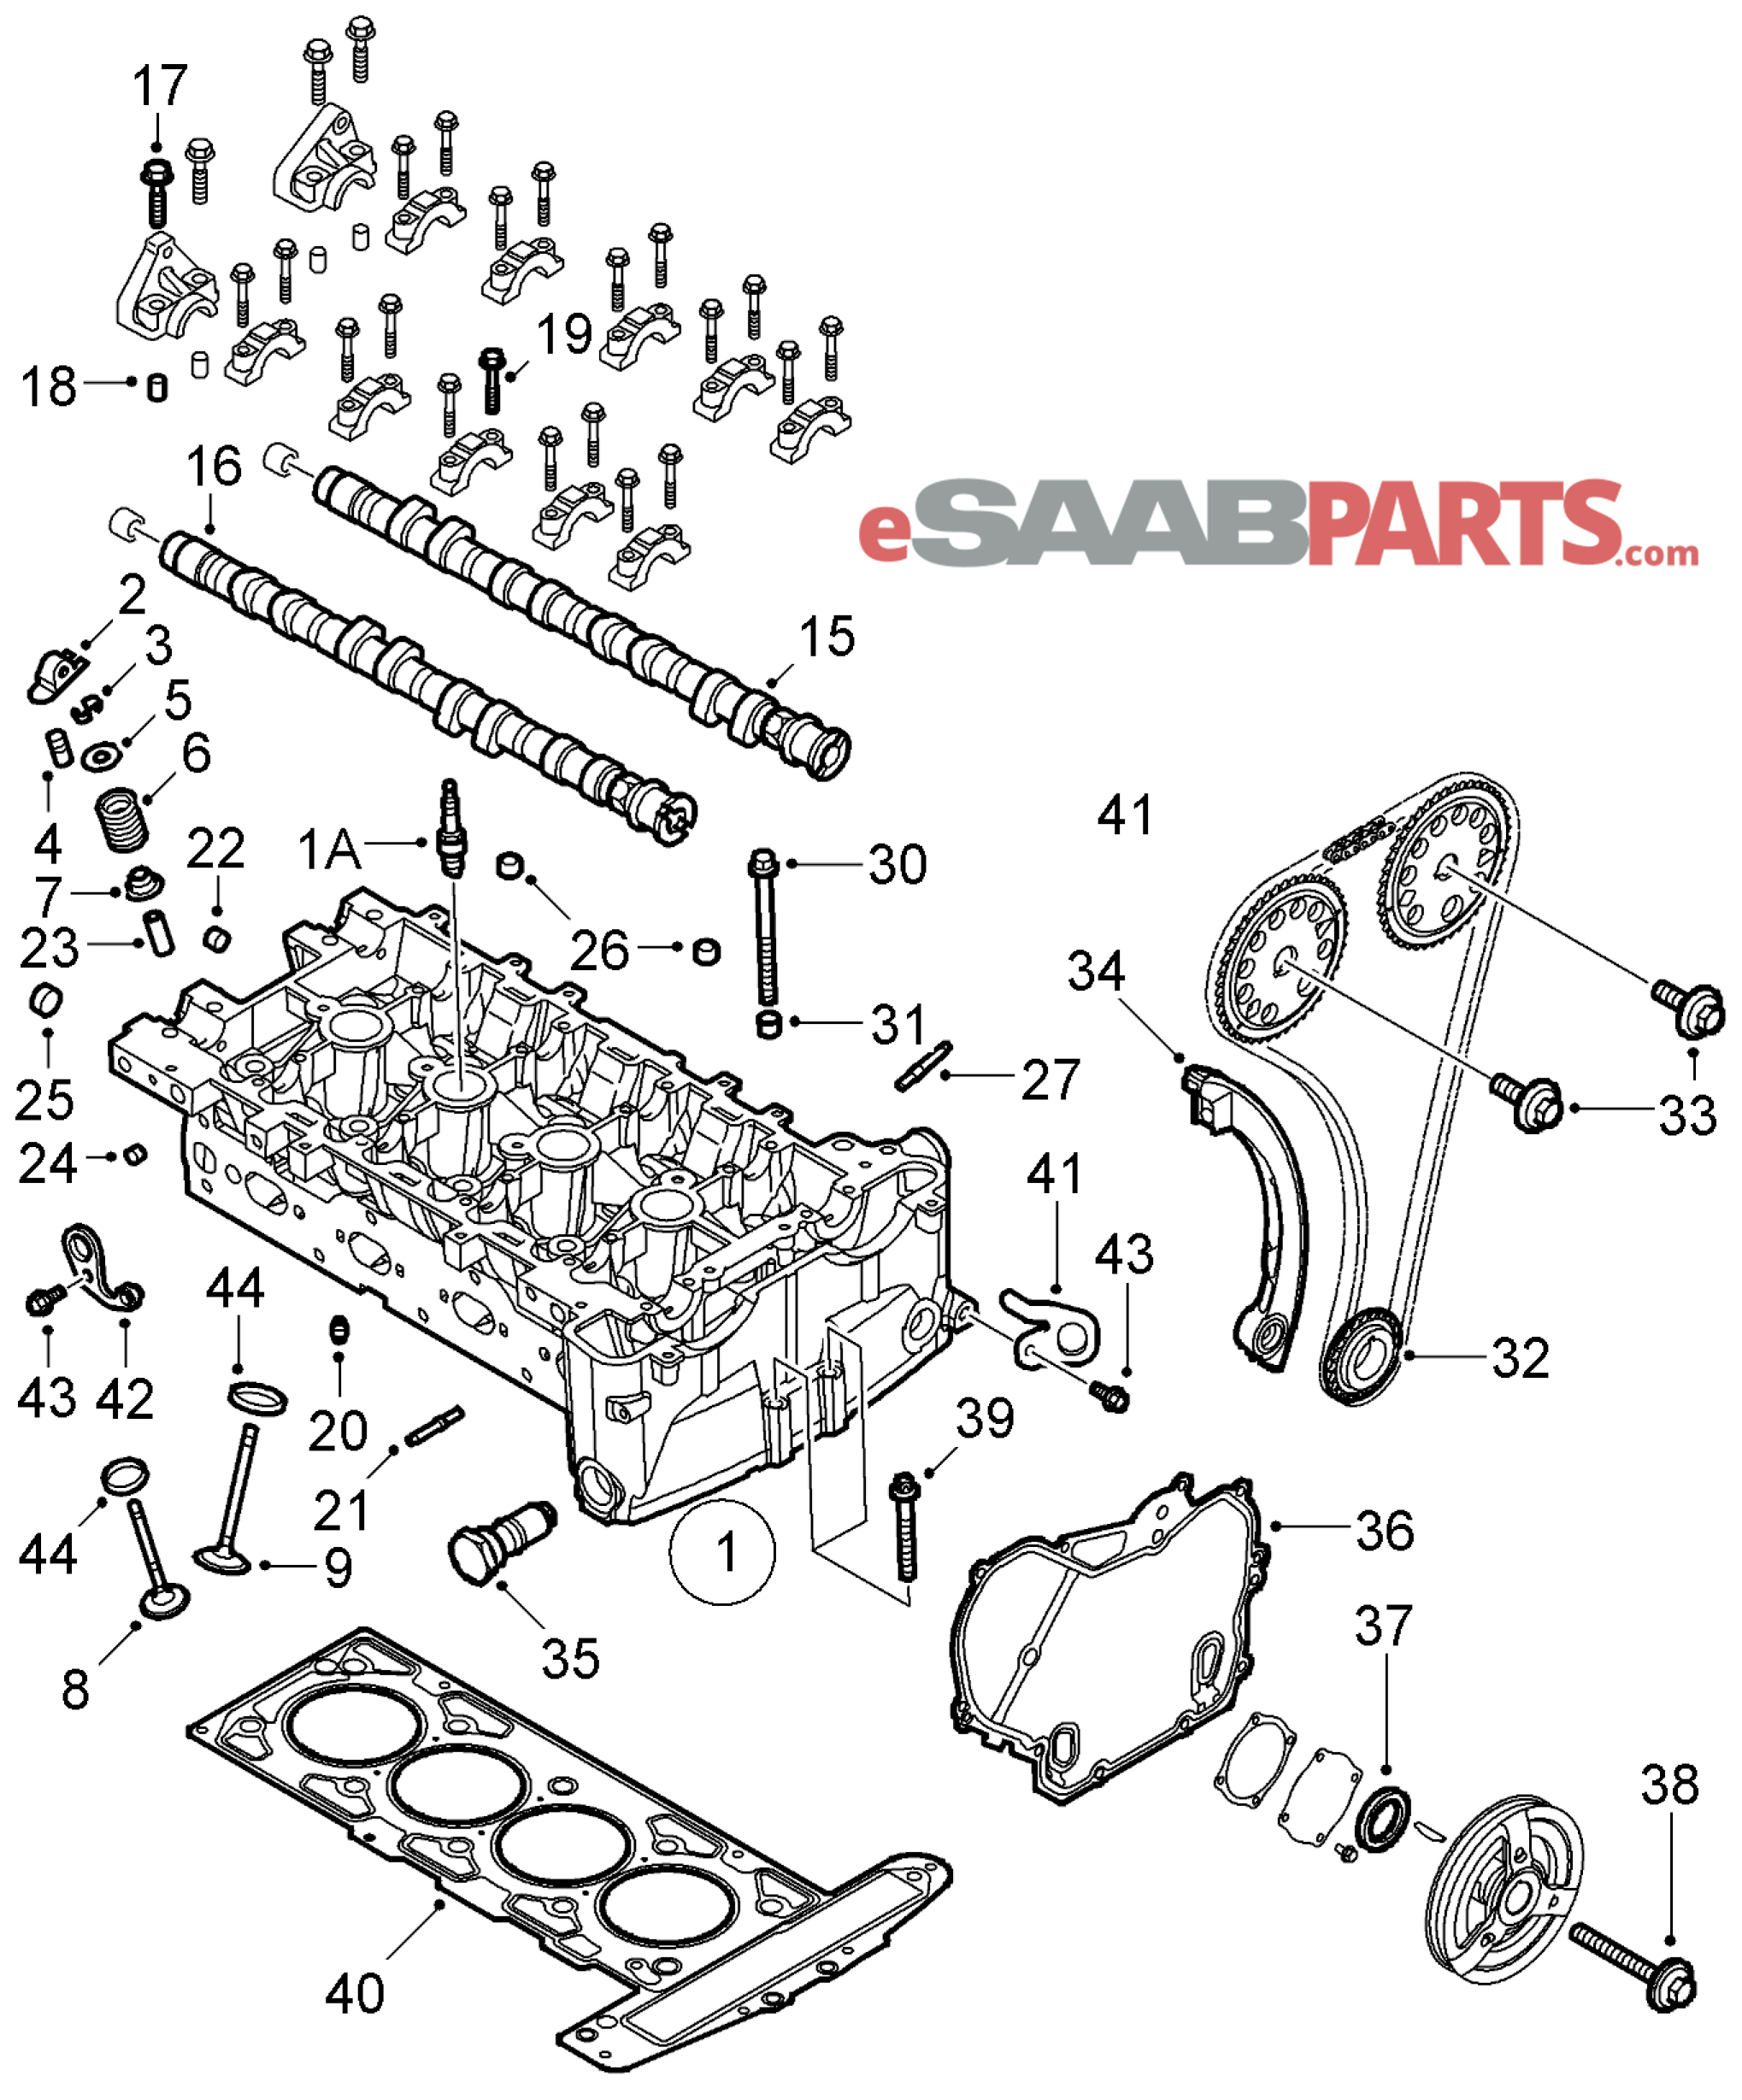 Saab Wiring : Automatic Transmission Parts Diagram 99 Saab